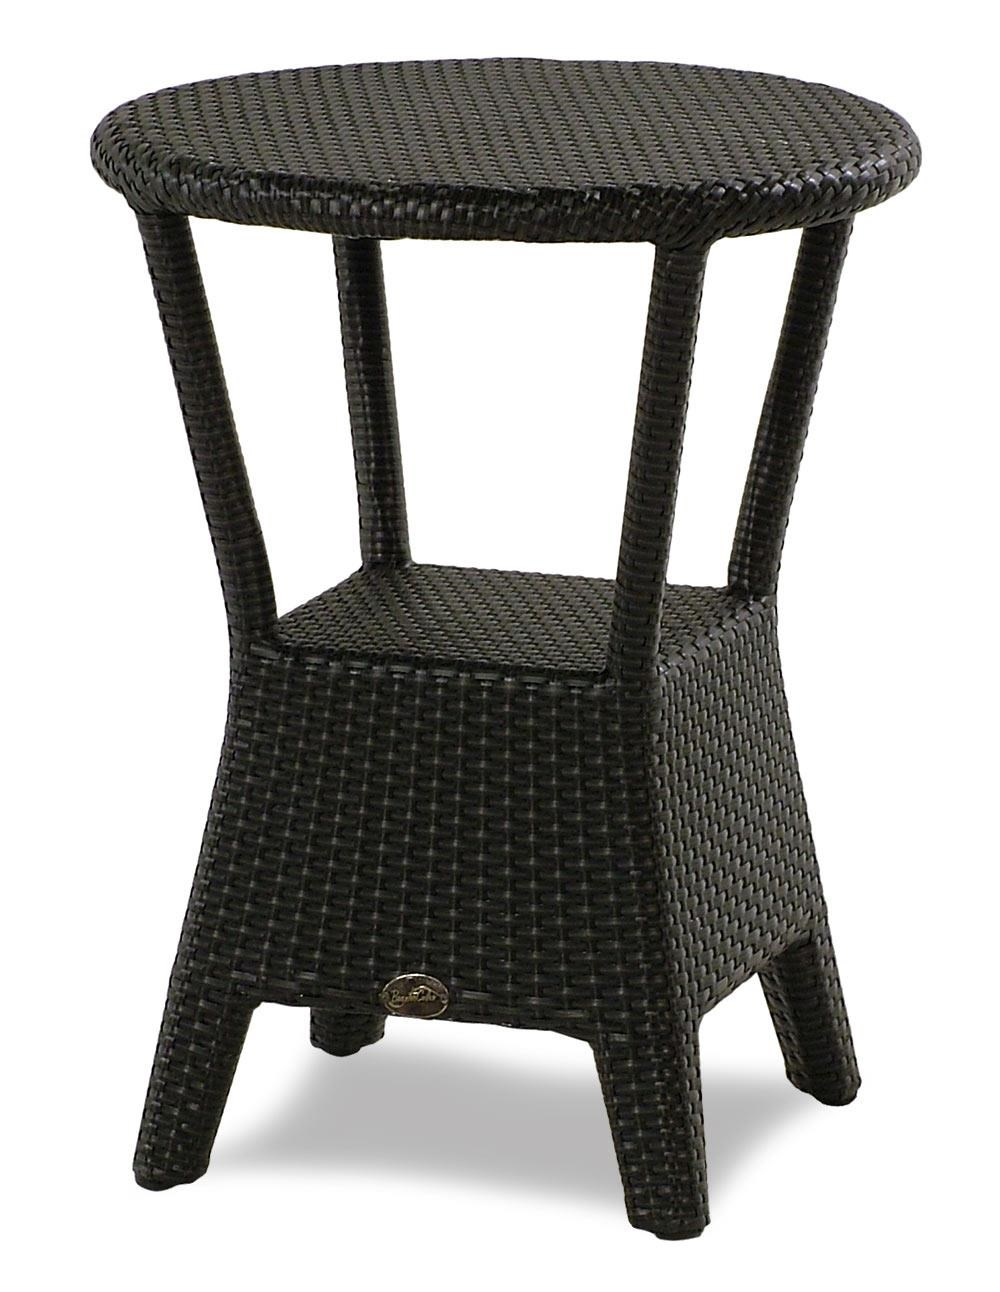 Braxton Culler Oasis Round Chairside Table - Item Number: 435-122